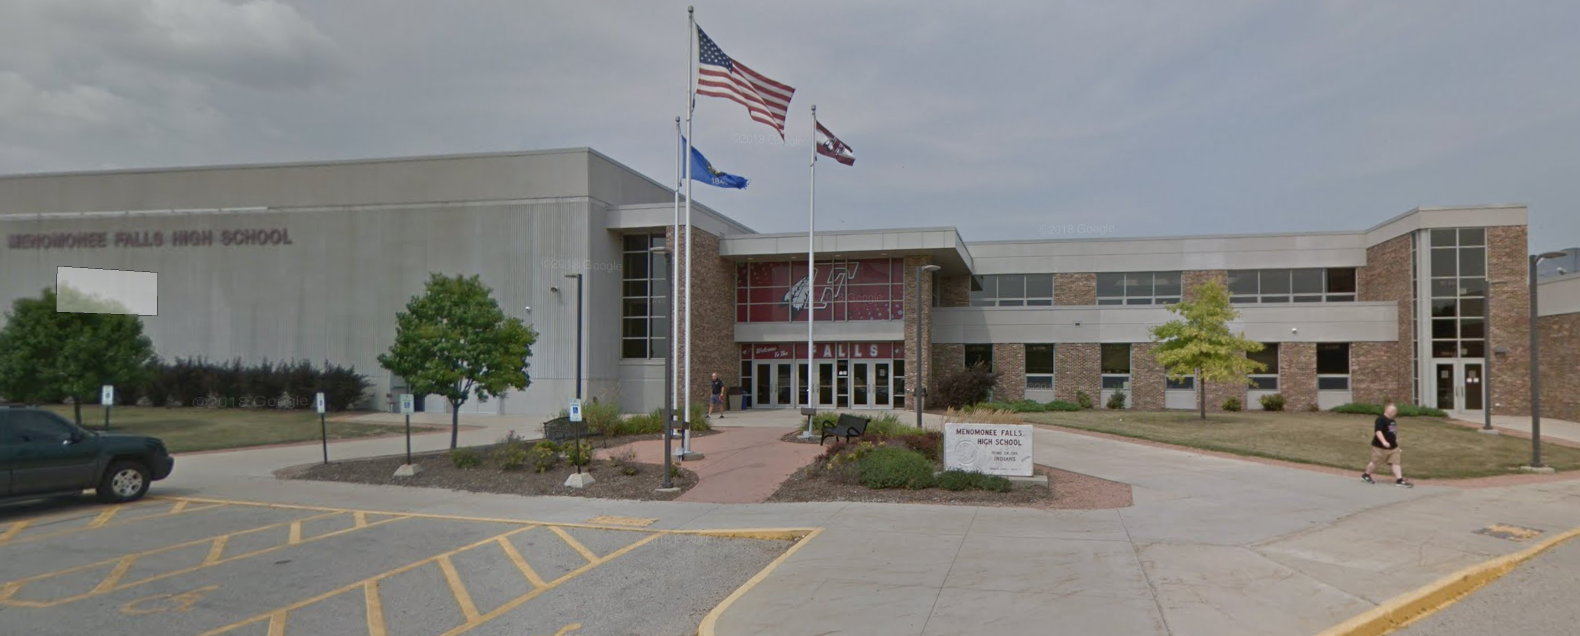 Menomonee Falls High is ranked 18th within Wisconsin. Students have the opportunity to take Advanced Placement® coursework and exams. The AP® participation rate at Menomonee Falls High is 56%. The total minority enrollment is 21%, and 14% of students are economically disadvantaged.